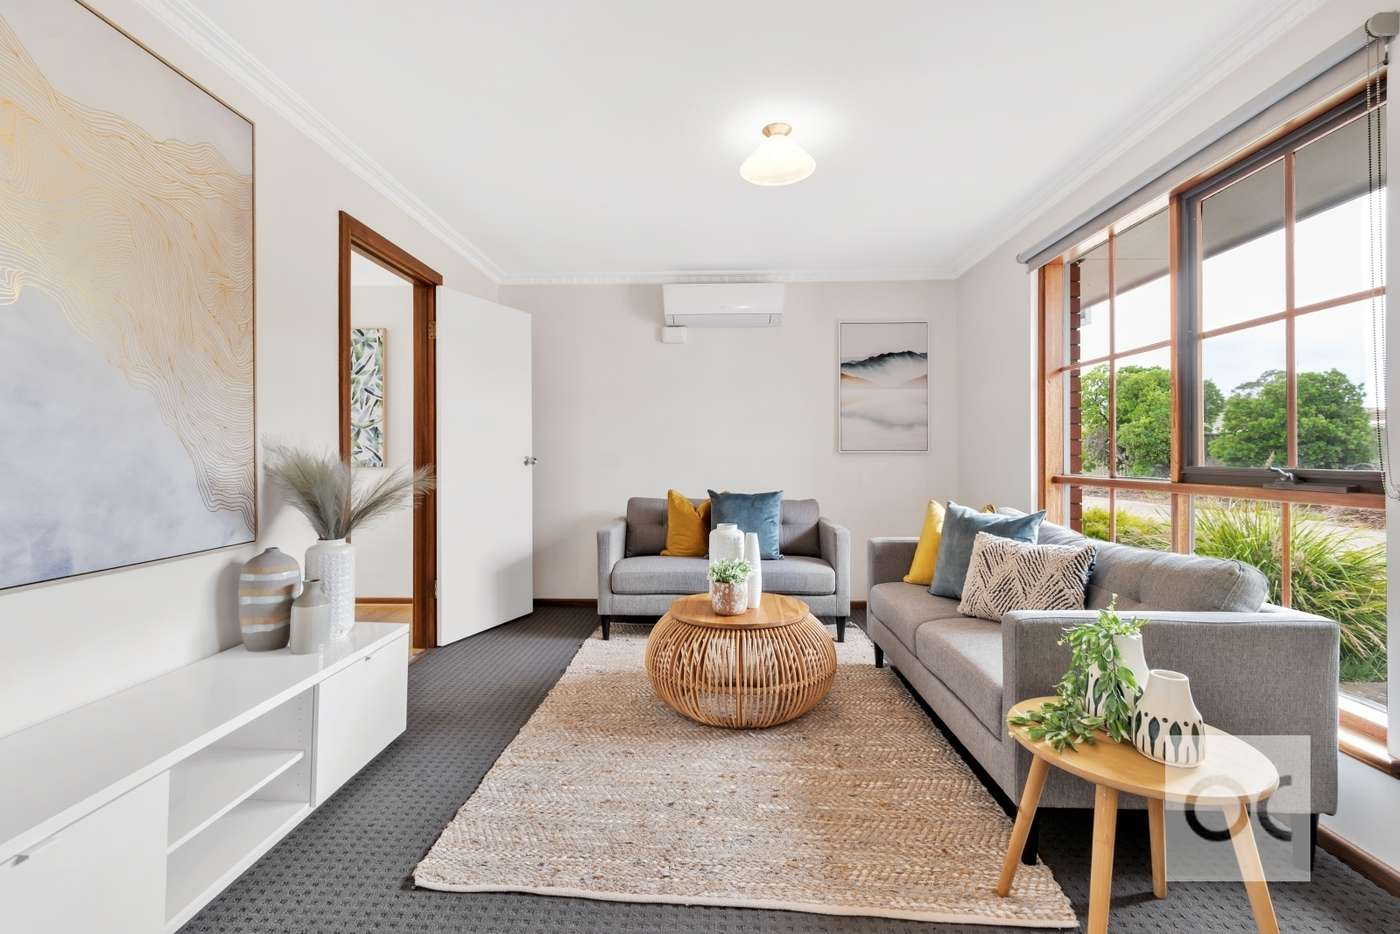 Fifth view of Homely unit listing, 8/74 McDonnell Avenue, West Hindmarsh SA 5007